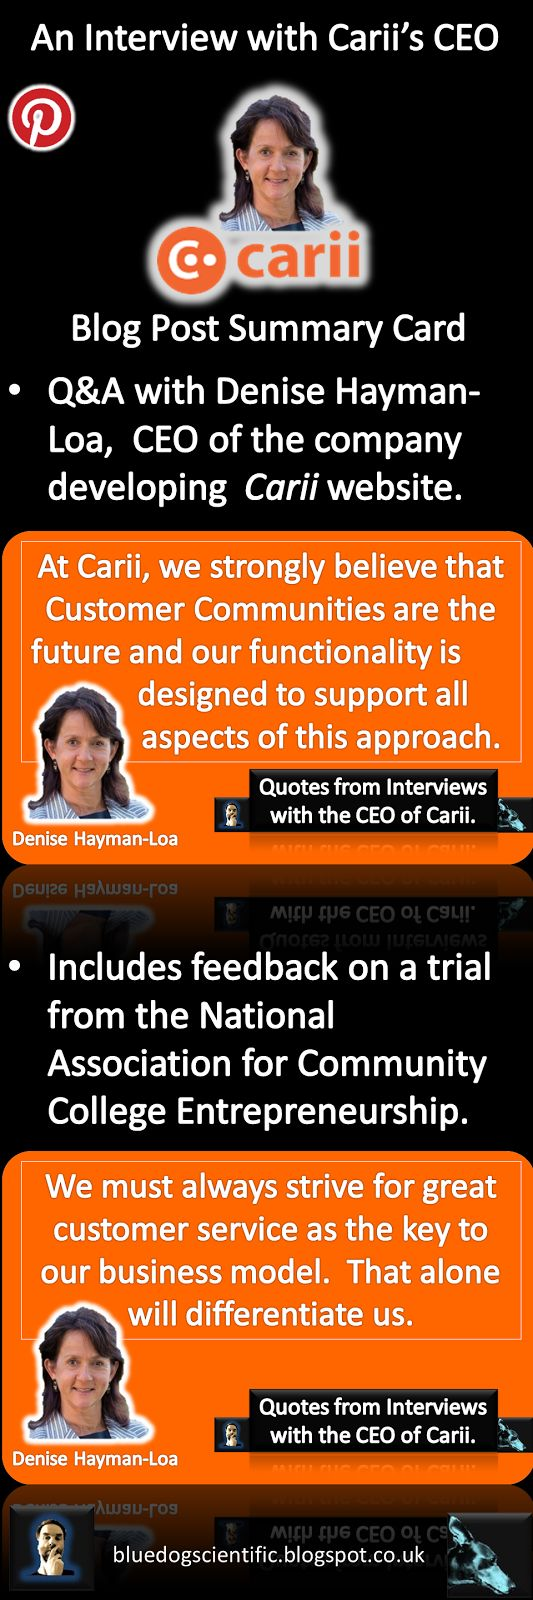 The Blue Dog Scientific Blog: Q&A with the CEO of Carii. #networking #interview #carii